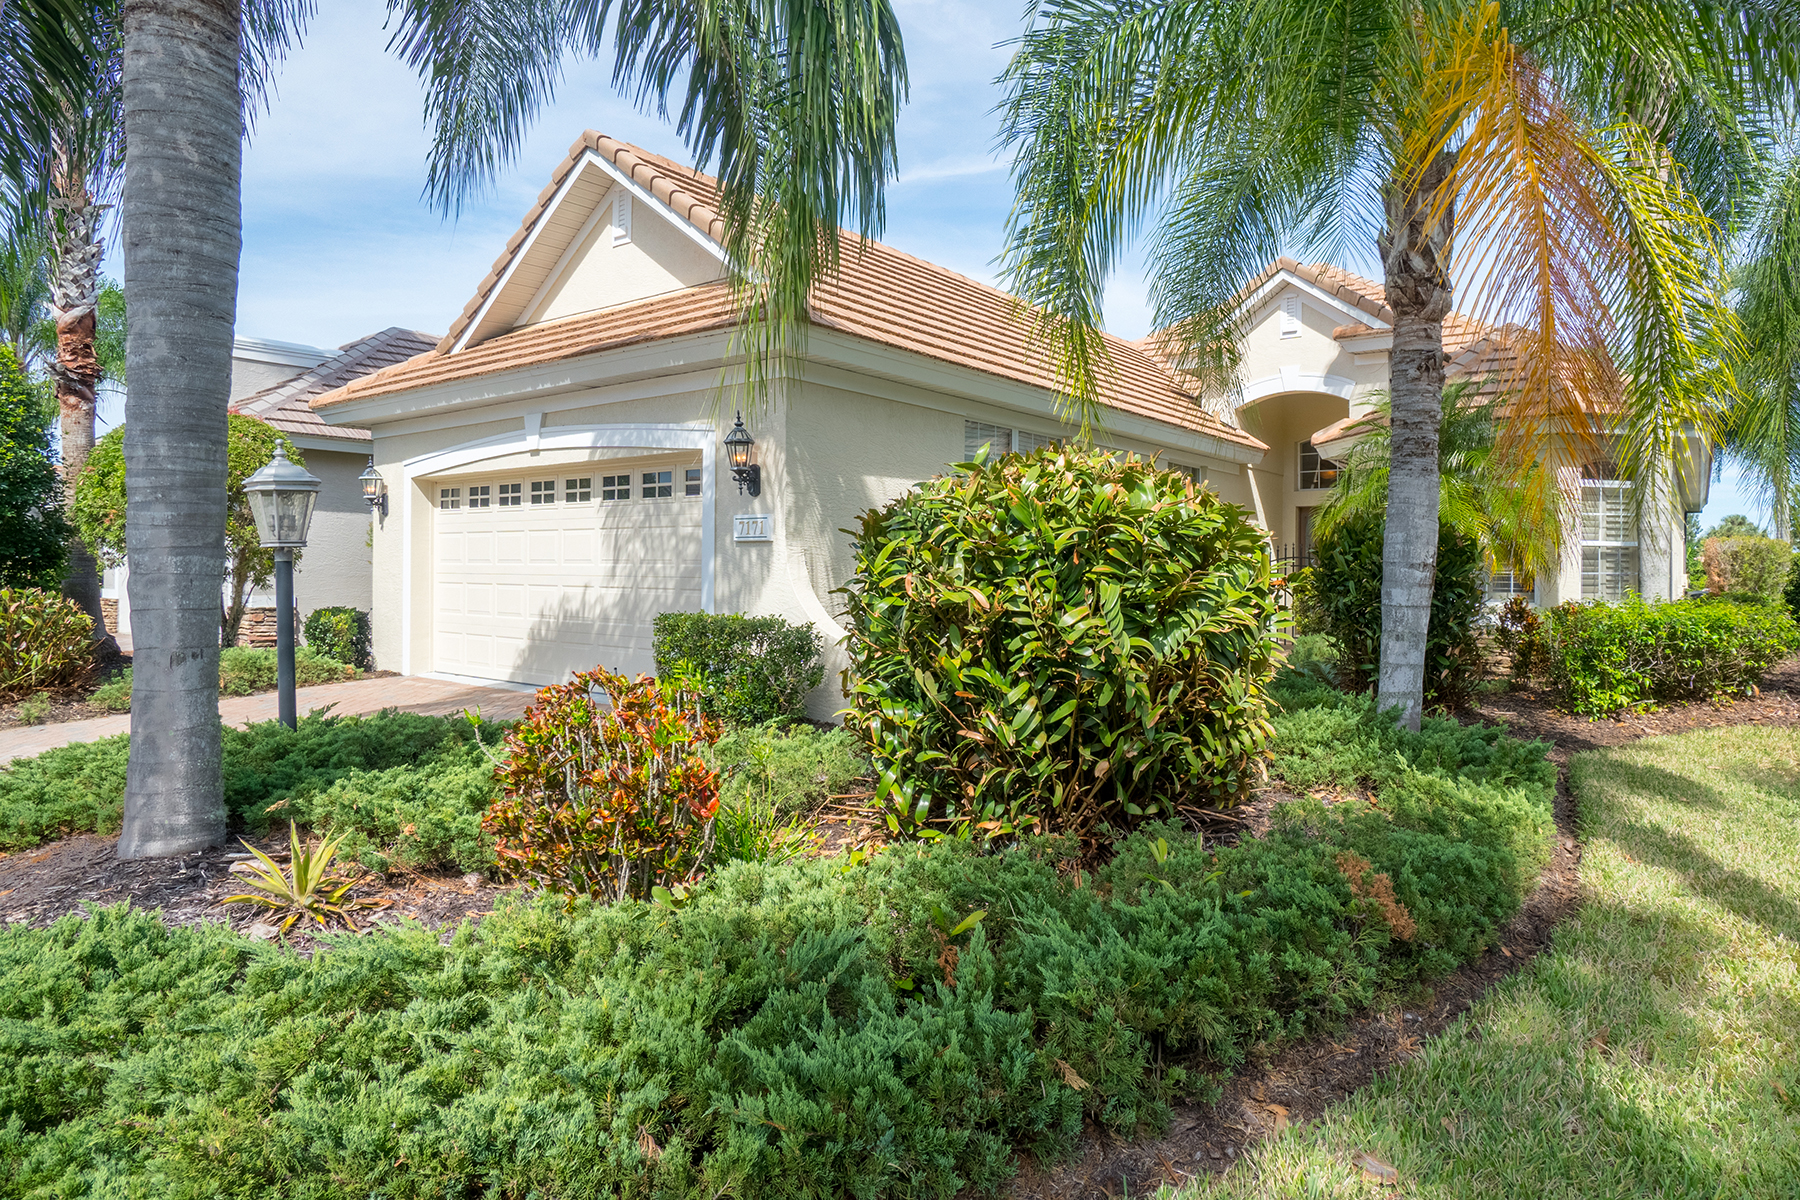 Single Family Home for Sale at SANDHILLS AT LAKEWOOD RANCH COUNTRY CLUB VILLAGE 7171 Sandhills Pl Lakewood Ranch, Florida, 34202 United States